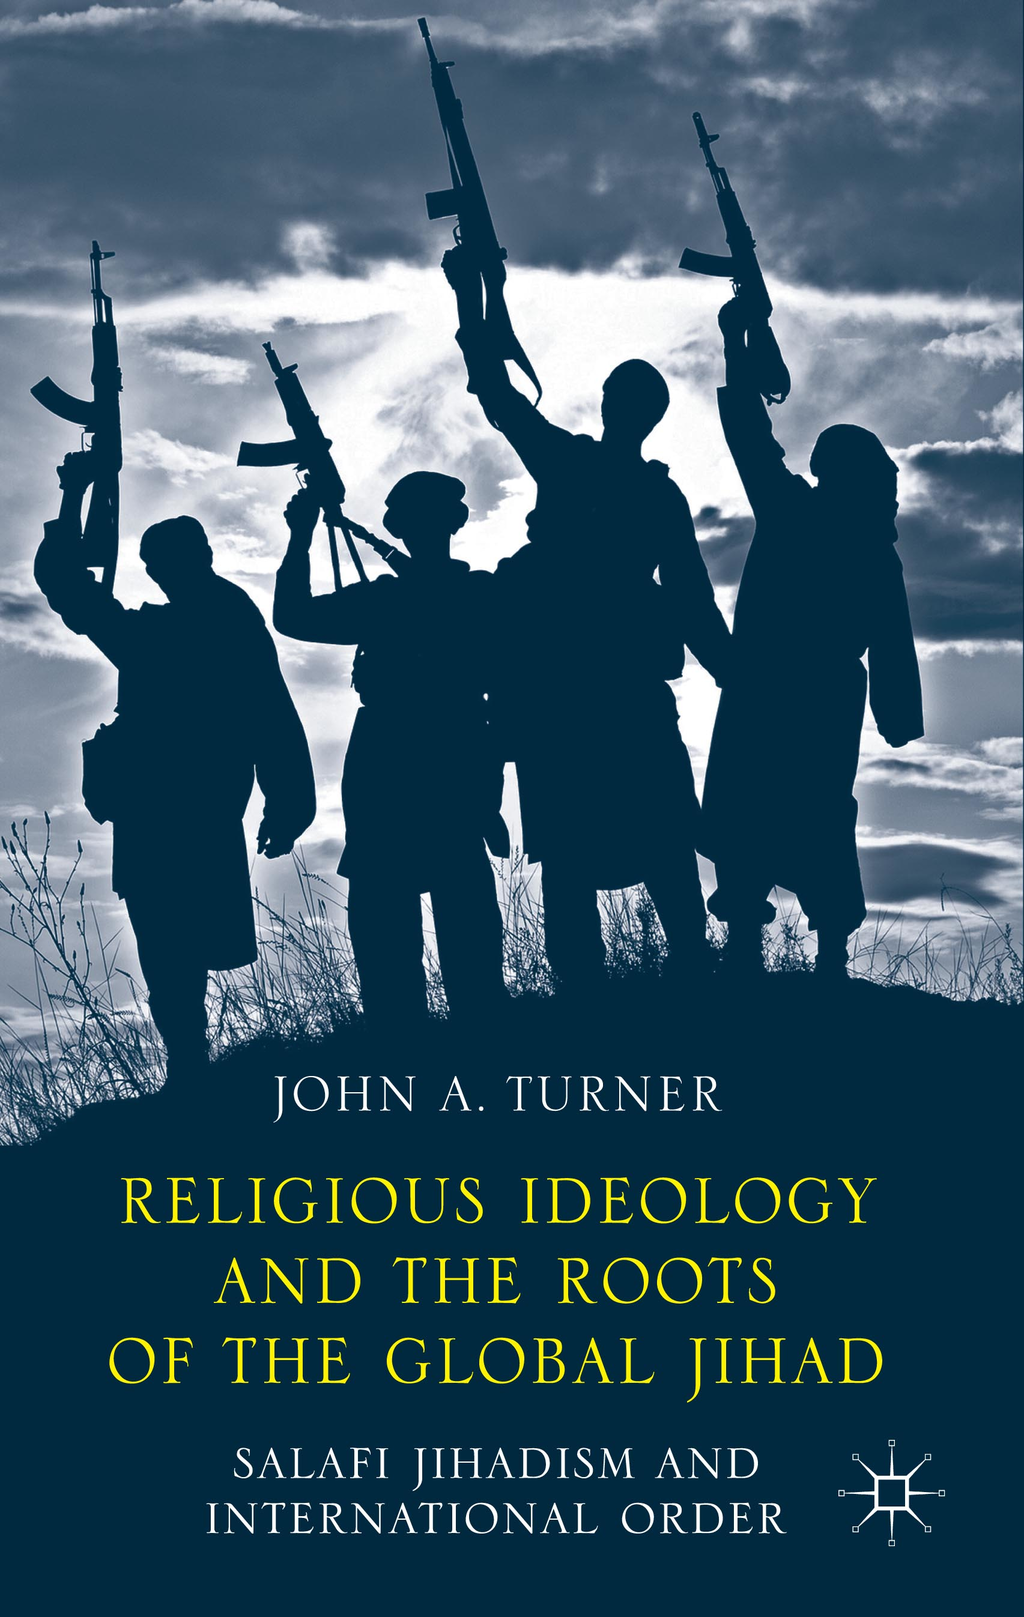 Religious Ideology and the Roots of the Global Jihad Salafi Jihadism and International Order